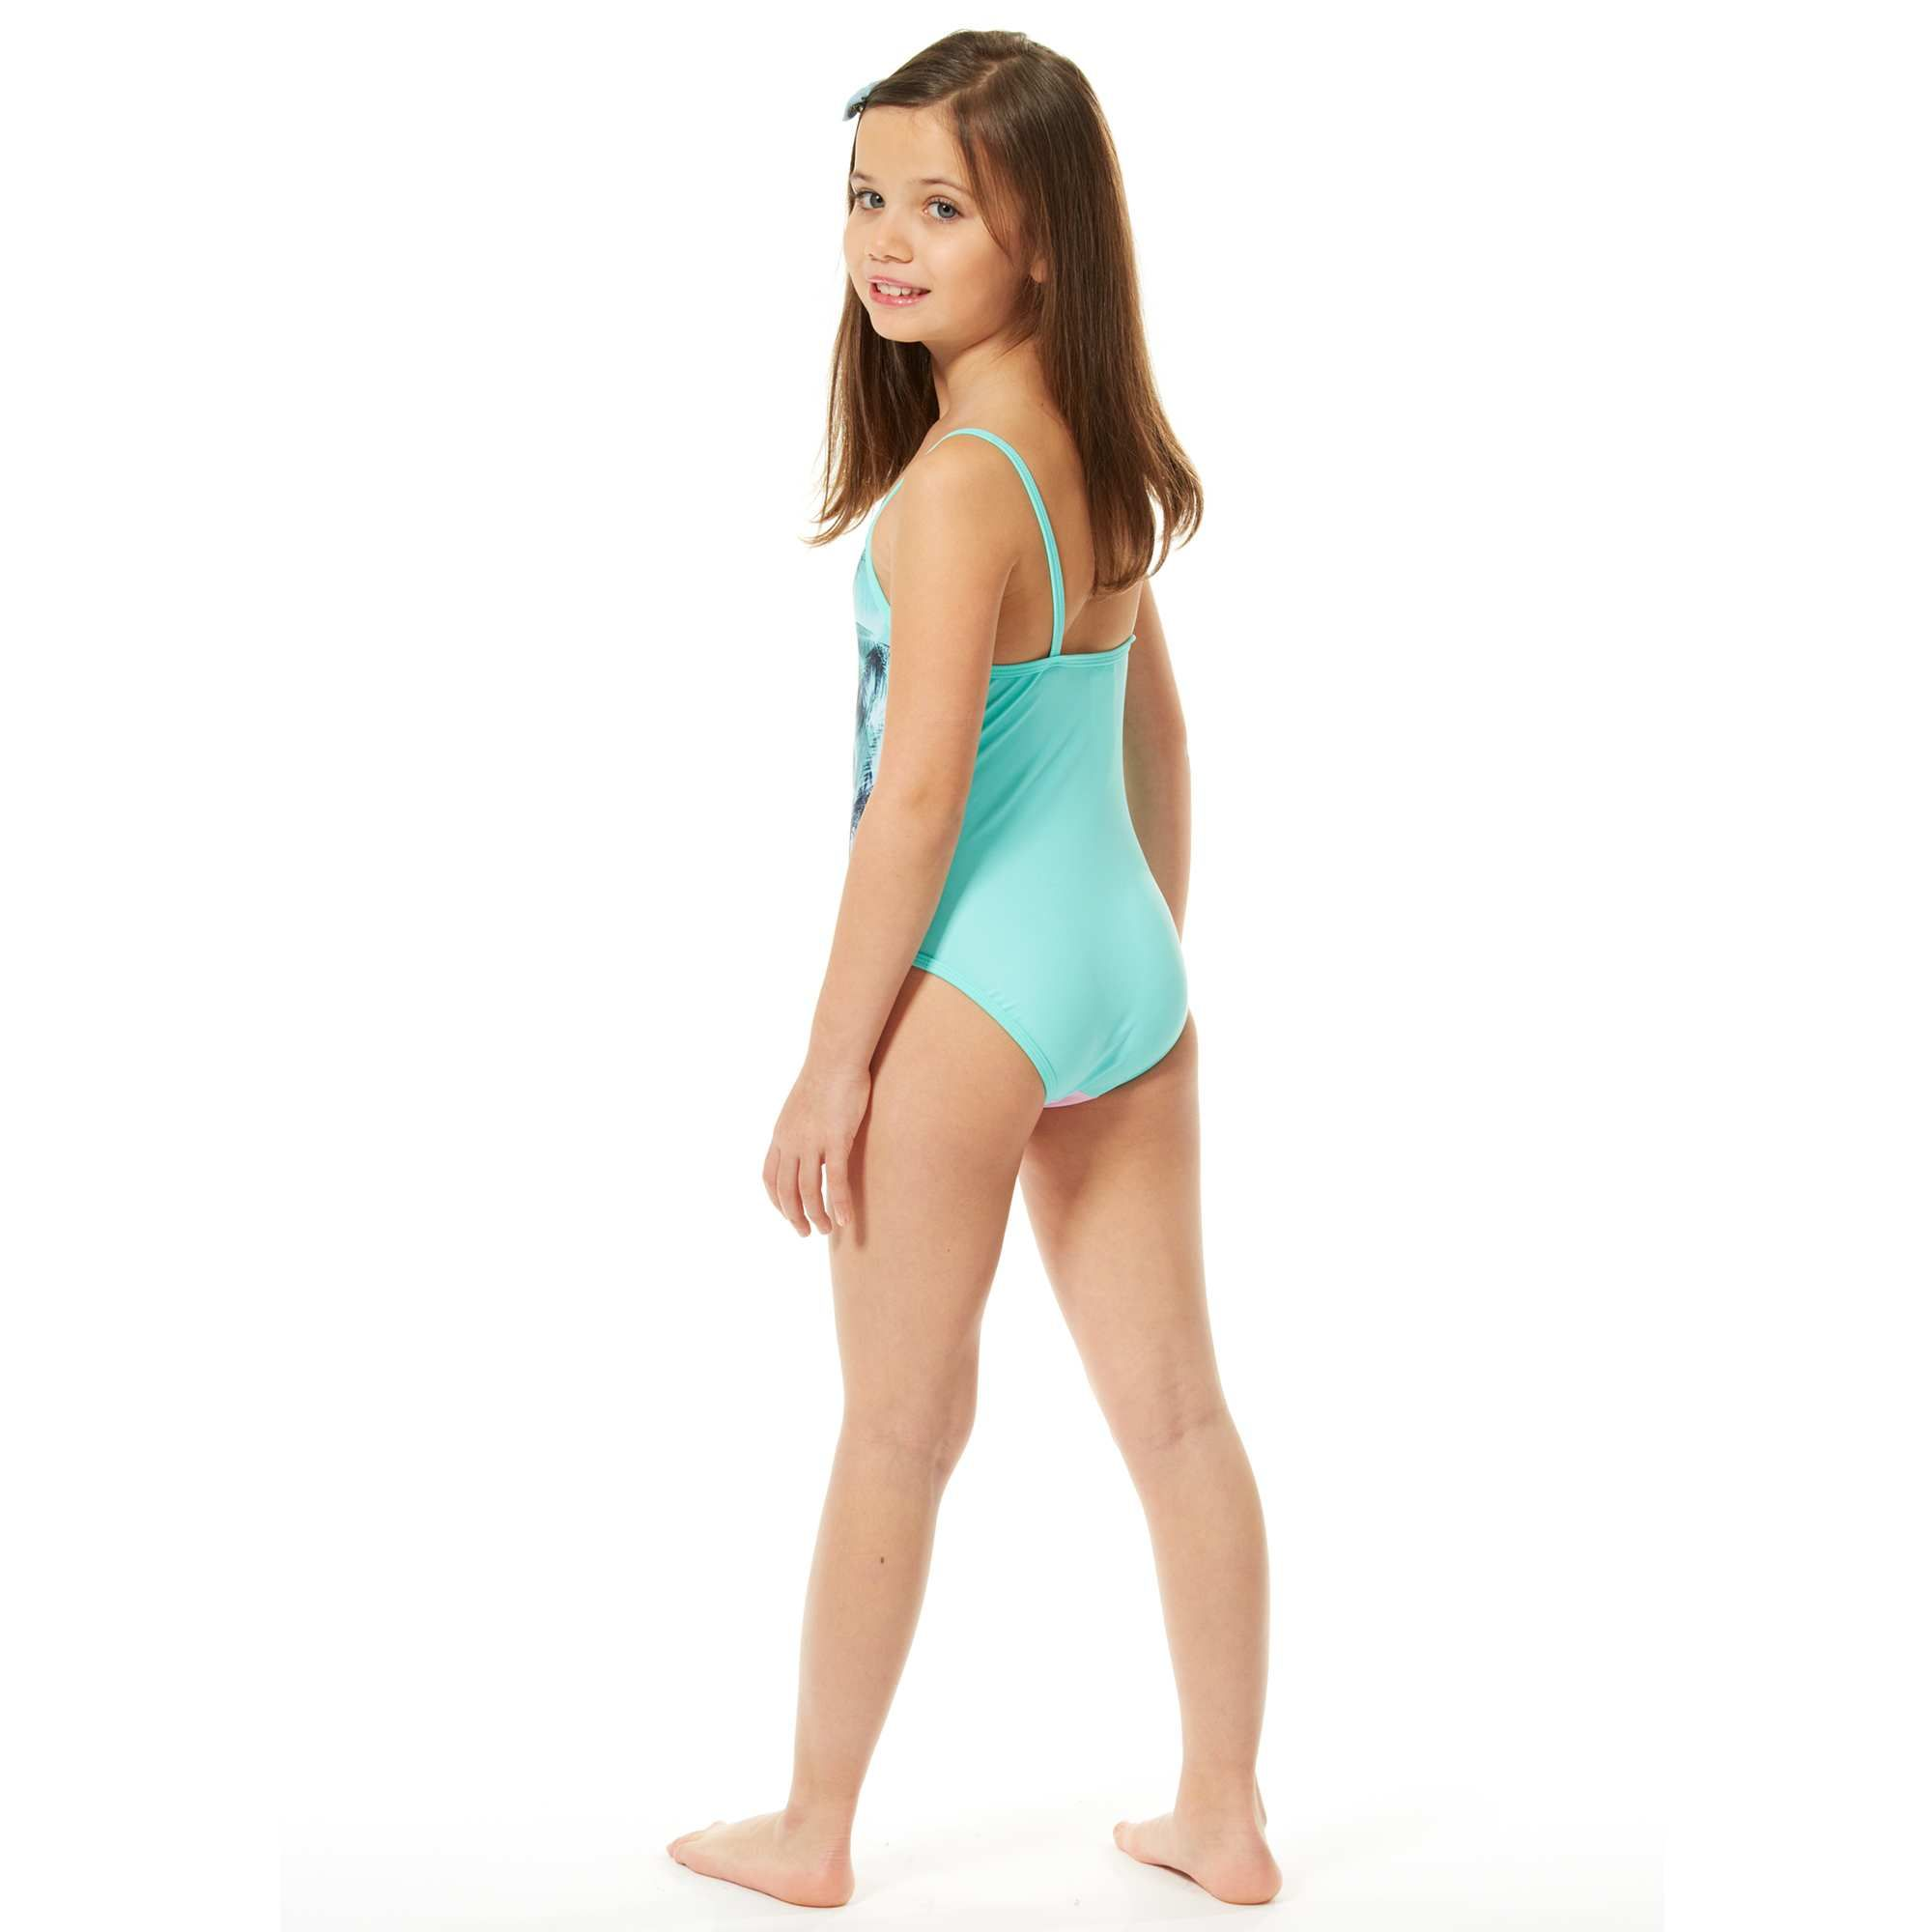 girl-swimsuit-pictures-pic-sex-fuckingmydaughter